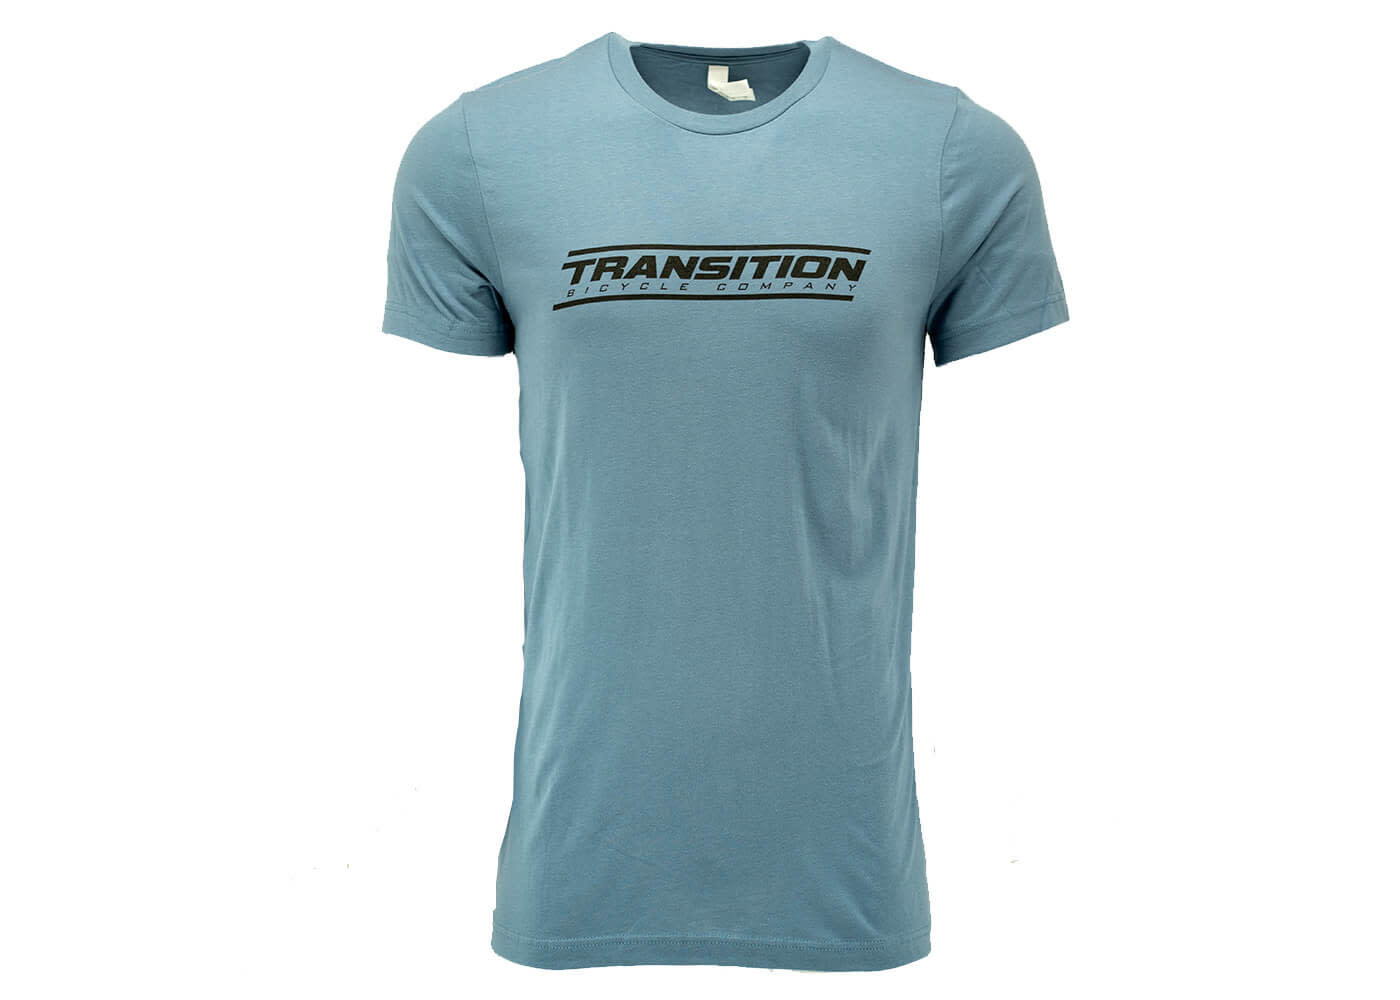 Transition T-Shirt: Transition Logo (Steel Blue, XX-Large)